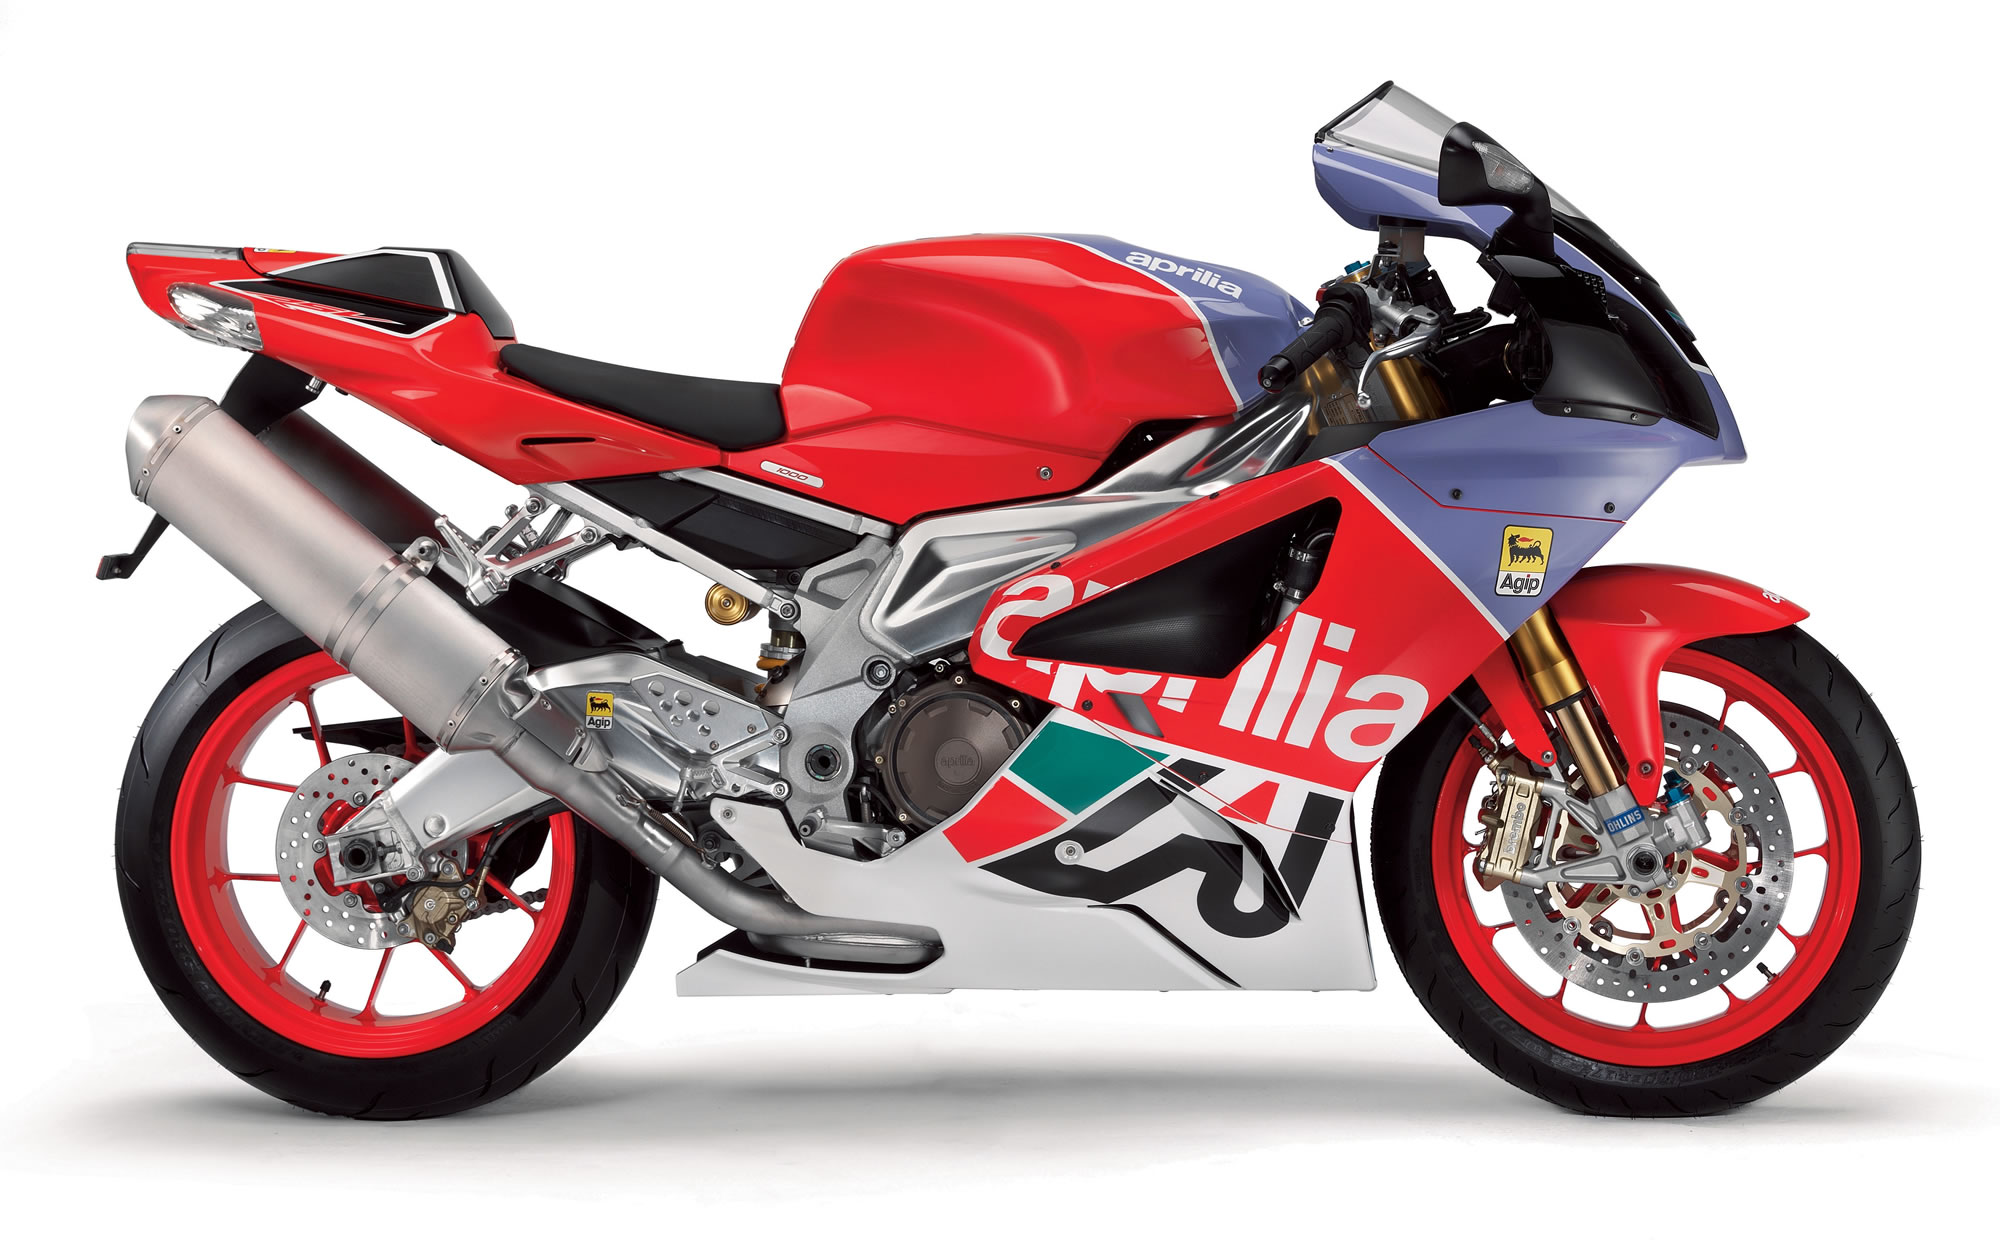 aprilia rsv 1000 r bol d 39 or limited edition in switzerland rare sportbikes for sale. Black Bedroom Furniture Sets. Home Design Ideas